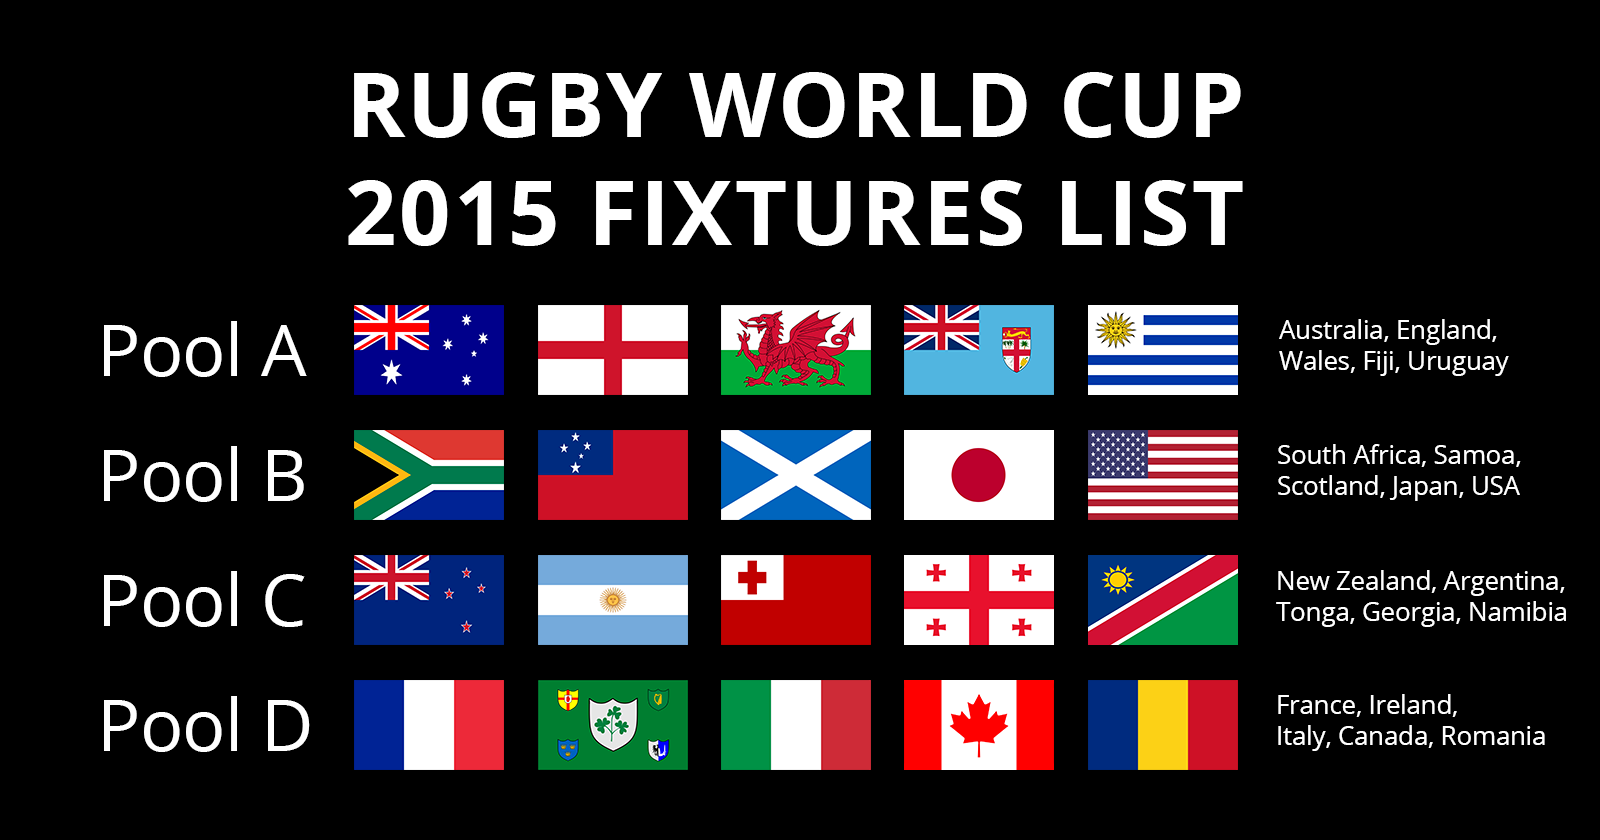 Rugby World Cup 2015 Fixtures | Autumn Internationals